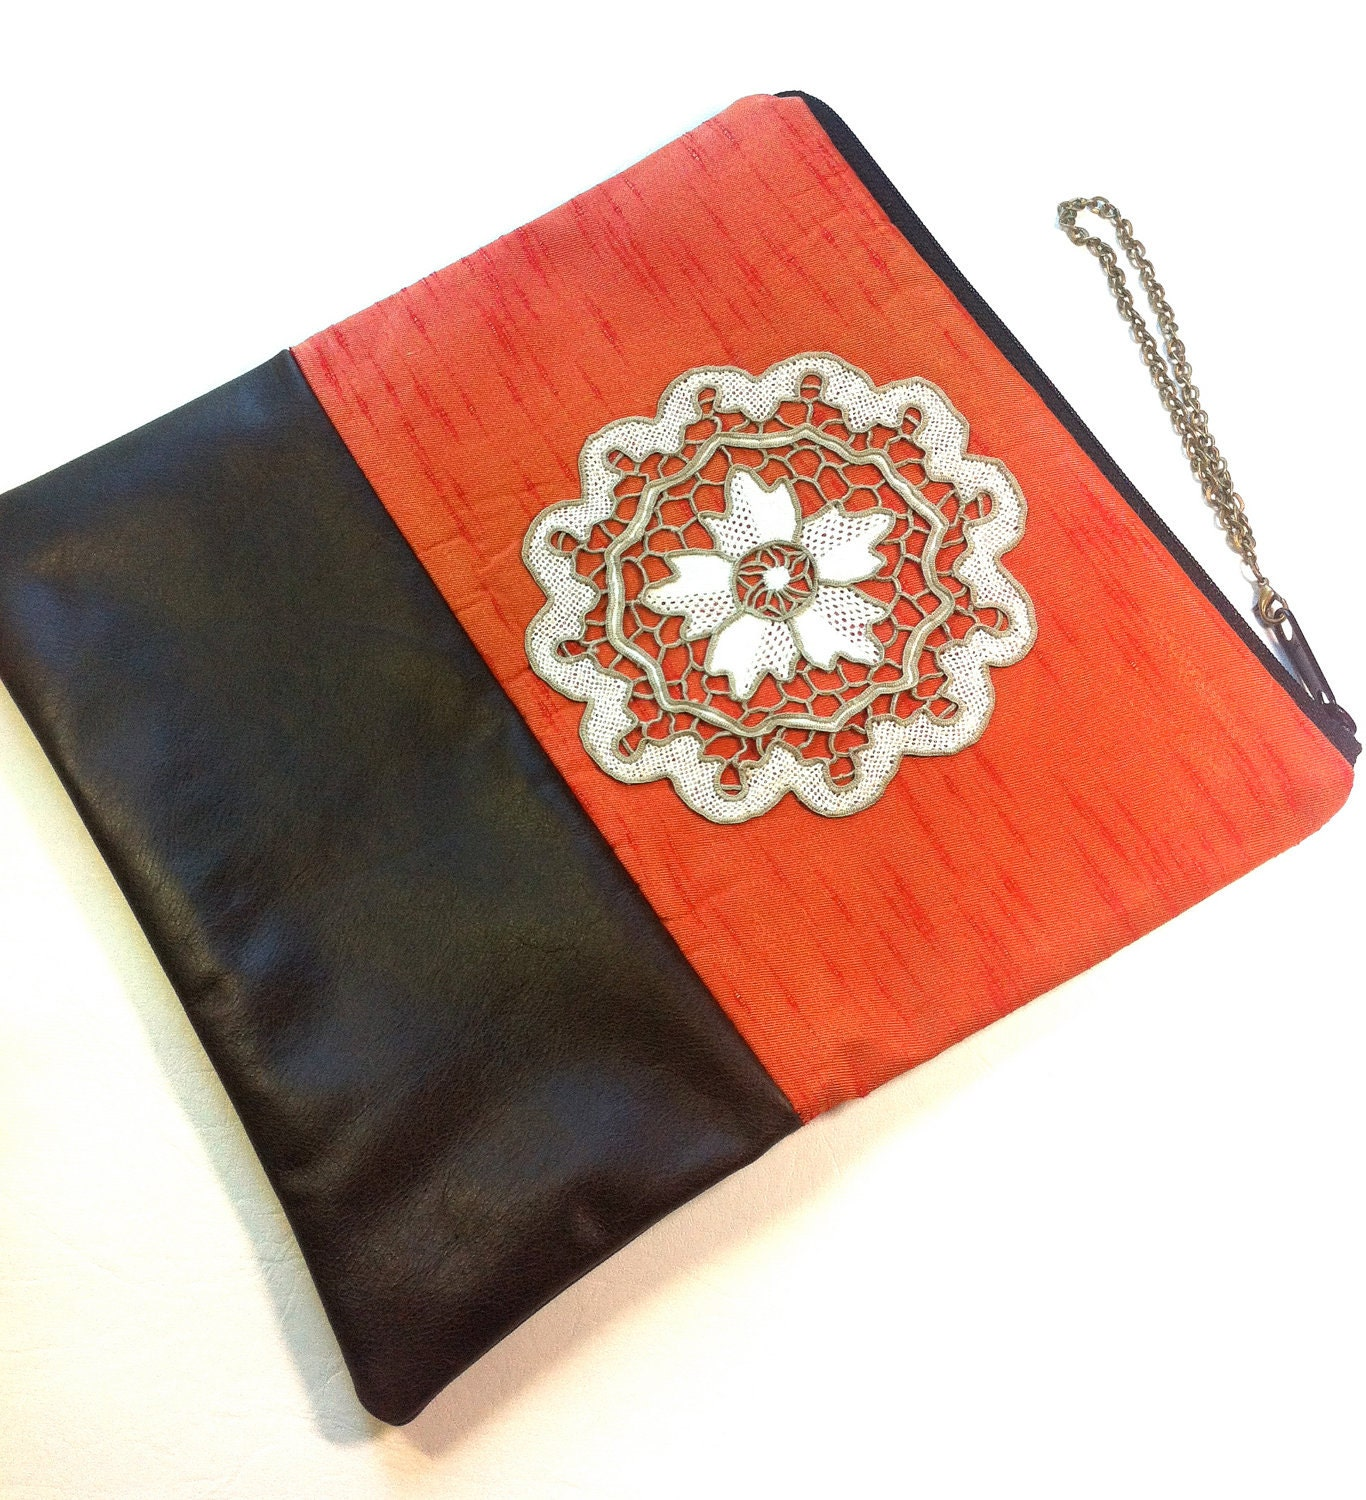 Recycled Leather and Reclaimed Fabric Square Foldover Clutch,  Brown and Orange - hoshiidesigns